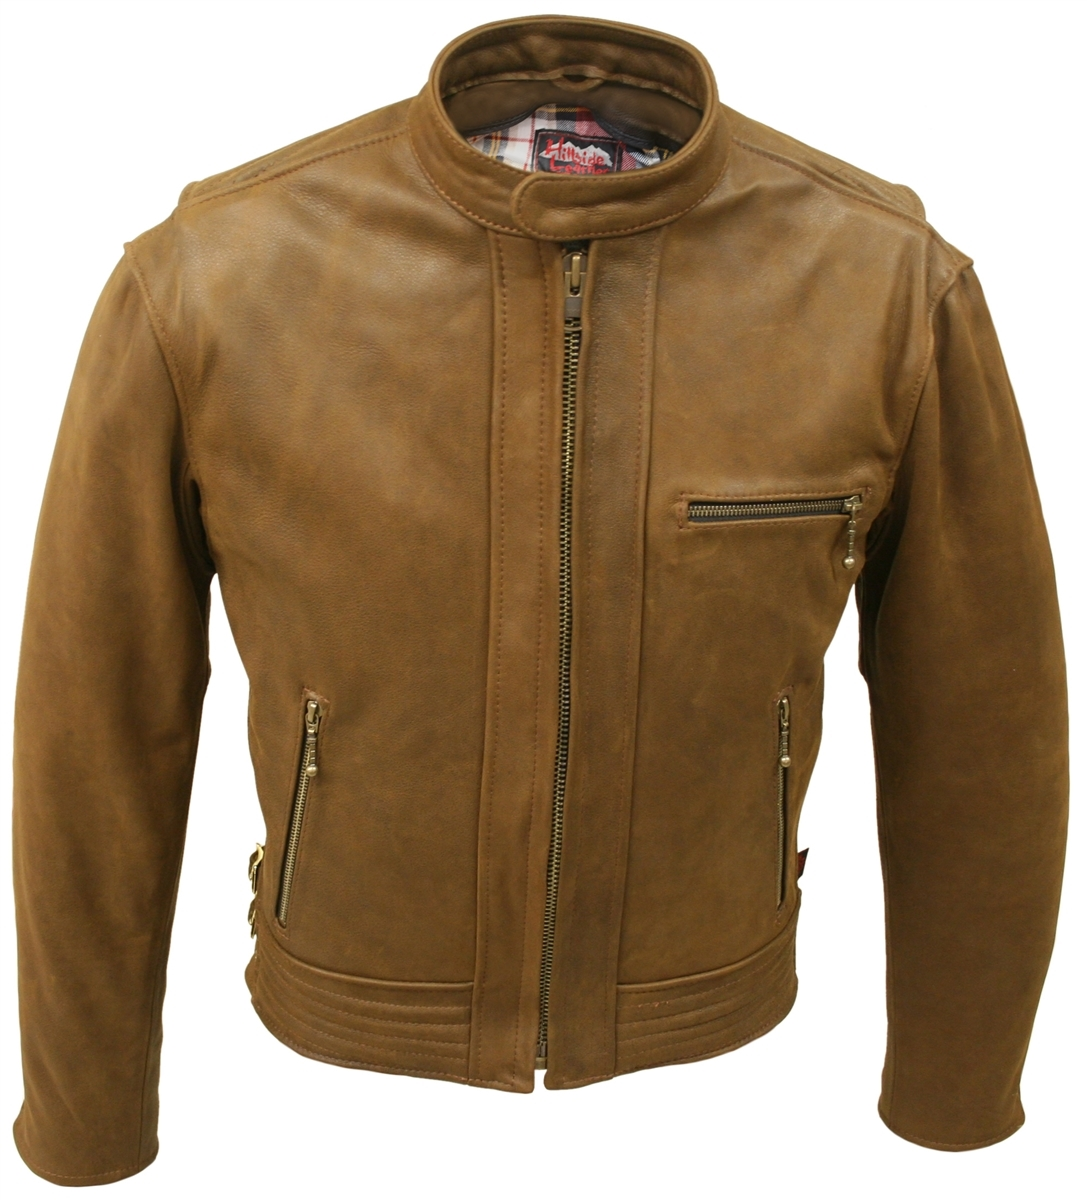 Hillside USA Padded Racer Jacket (Vintage)   Introducing a new casual jacket that combines distinct design and timeless style with Hillside USA Leather's commitment to quality craftsmanship.